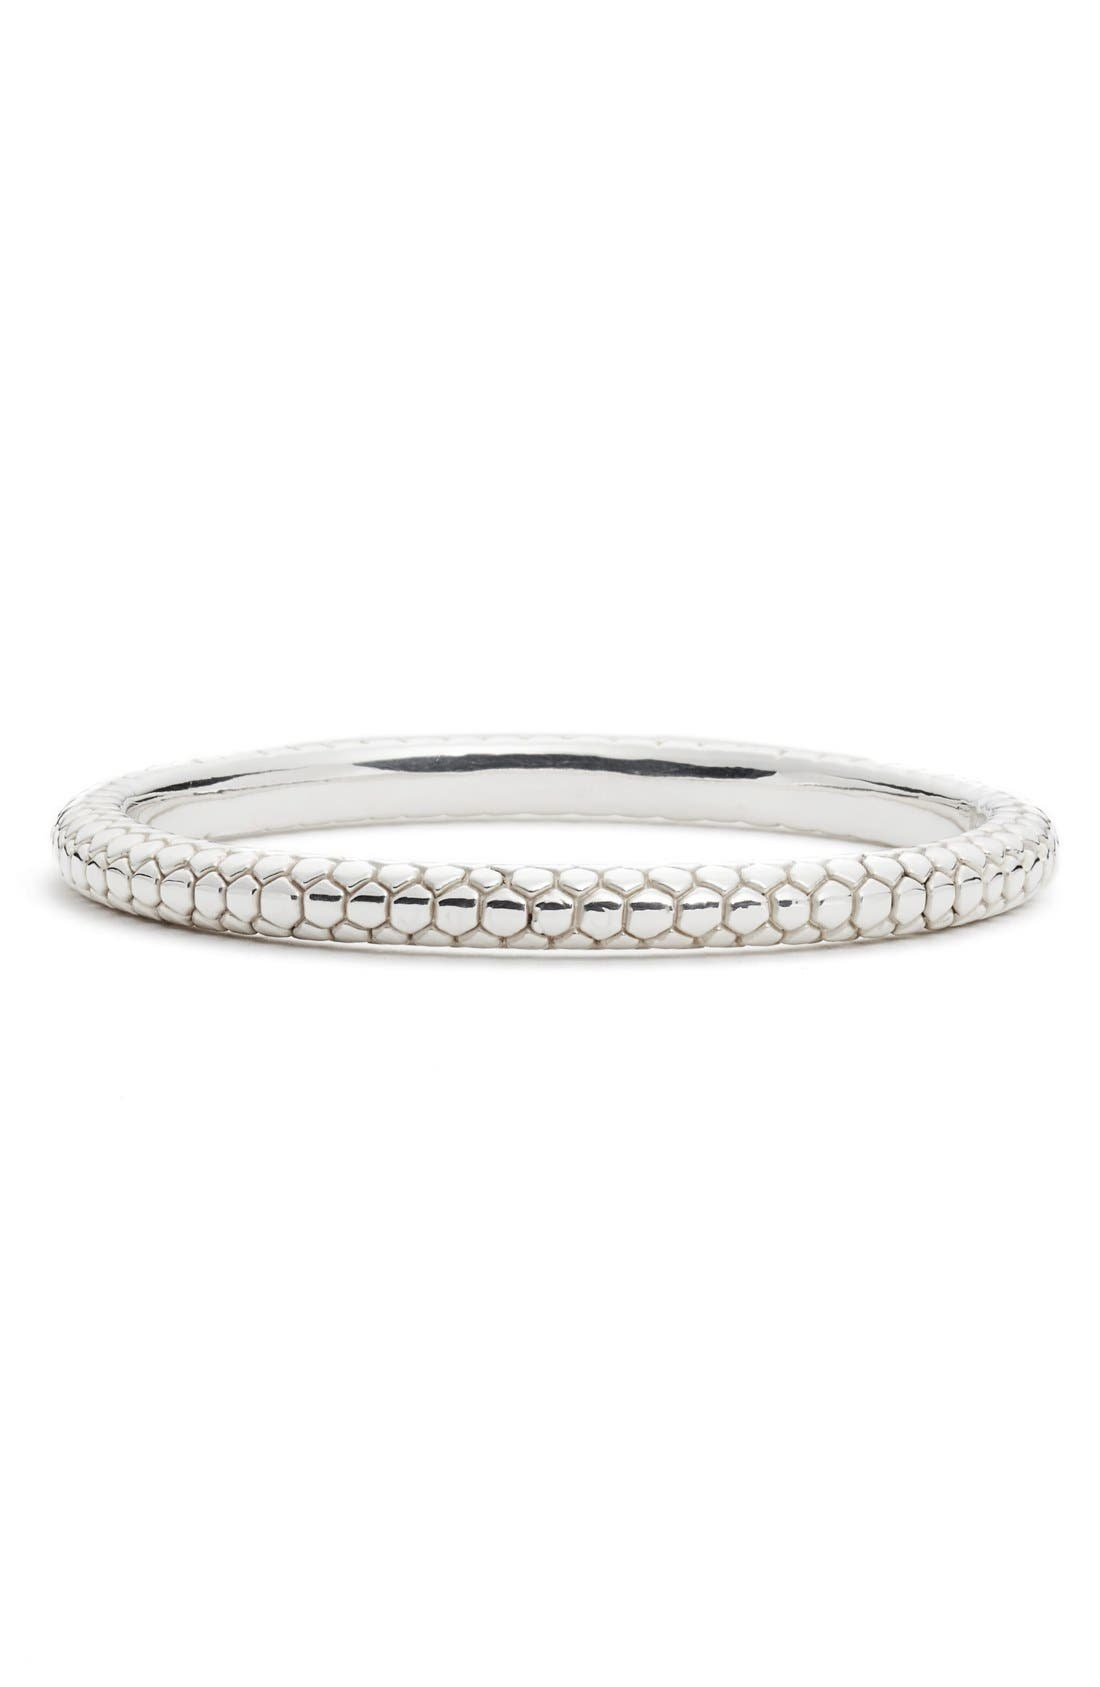 SIMON SEBBAG Pebble Textured Bangle